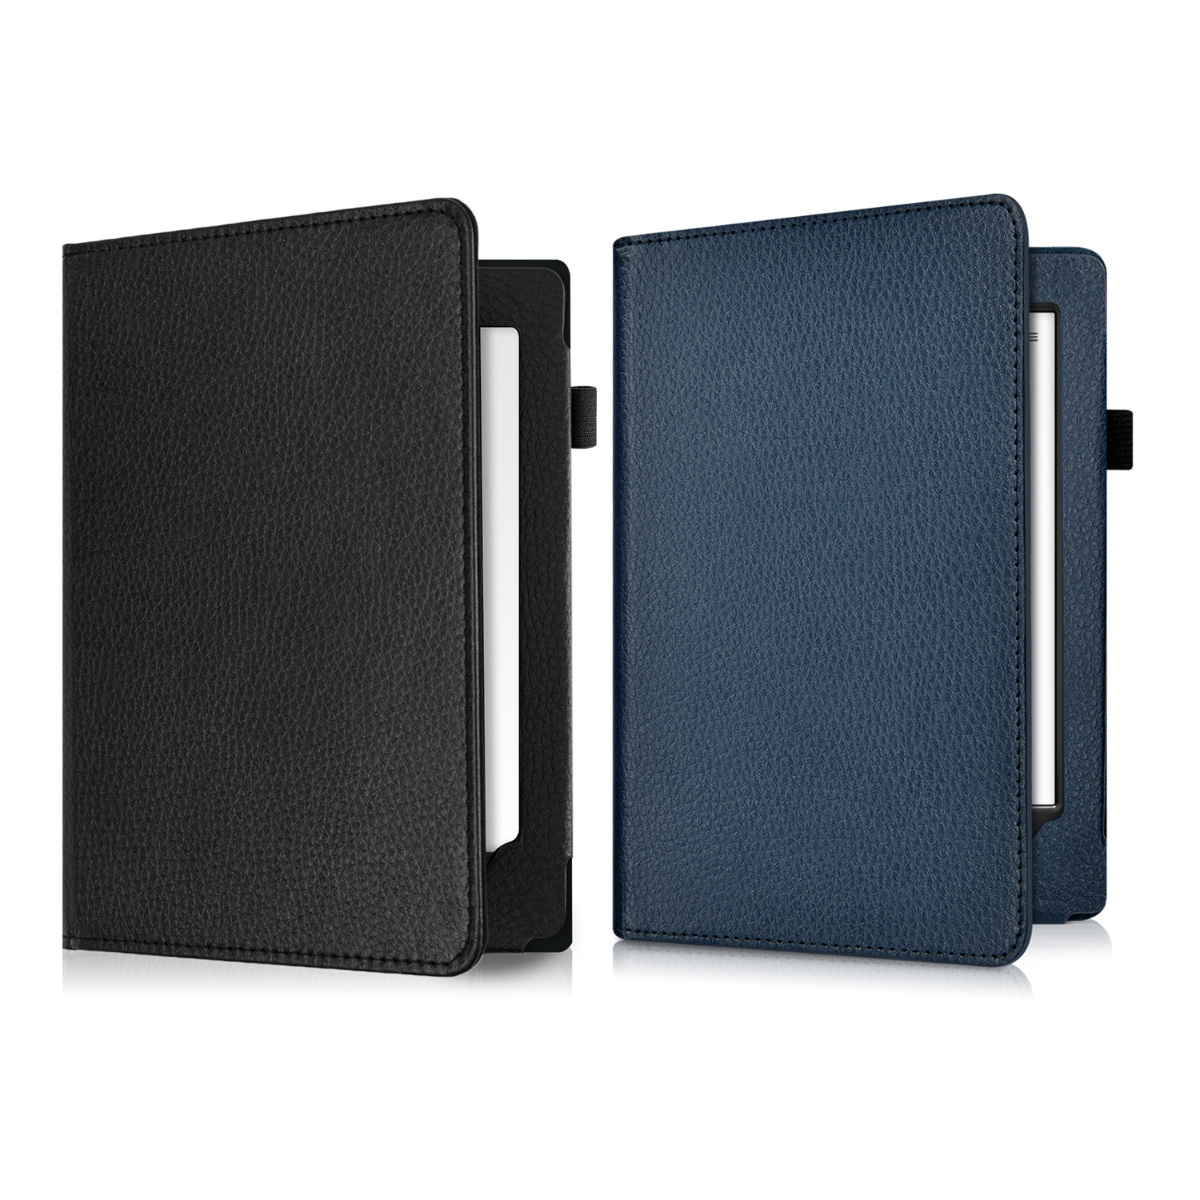 Kwmobile book style case for kobo aura h2o edition 1 cover for Housse kobo aura h2o edition 2